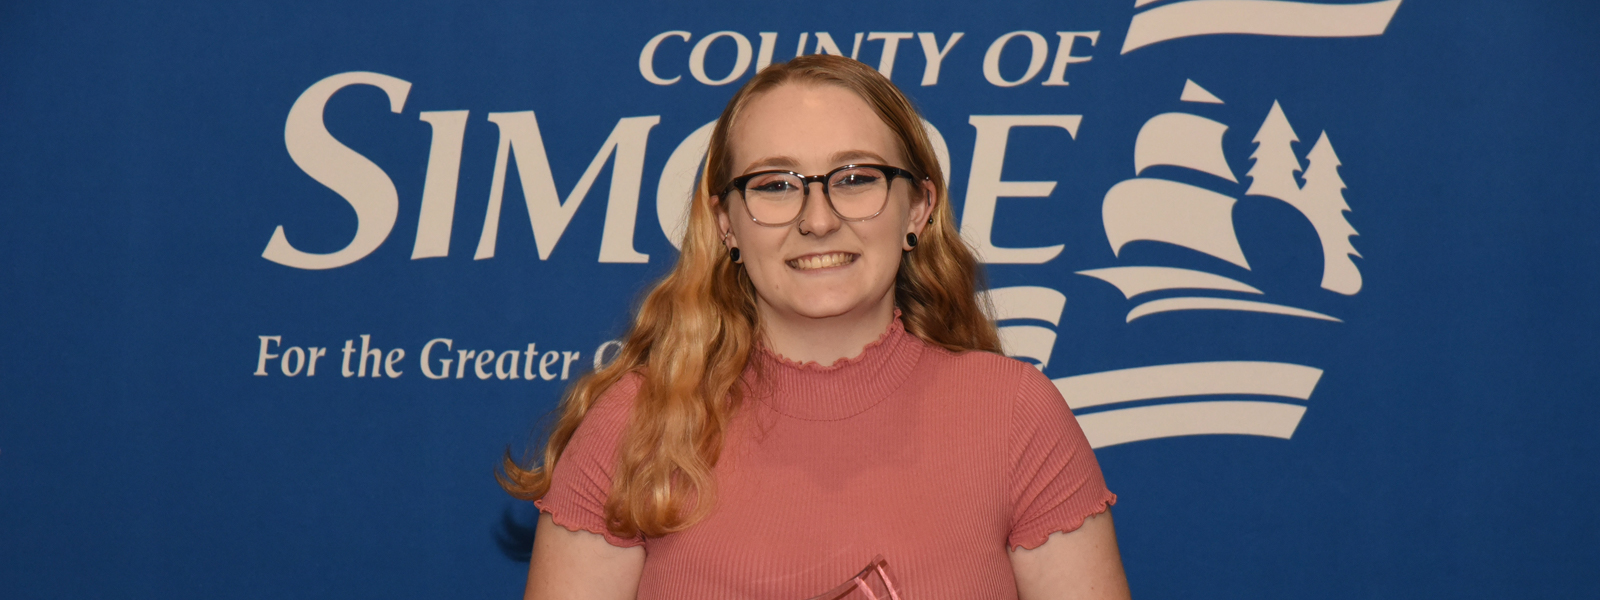 """Sarah Simpson is training to be a primary/junior teacher. Although, she says, """"I would also be interested in working with high school students later in my career."""""""